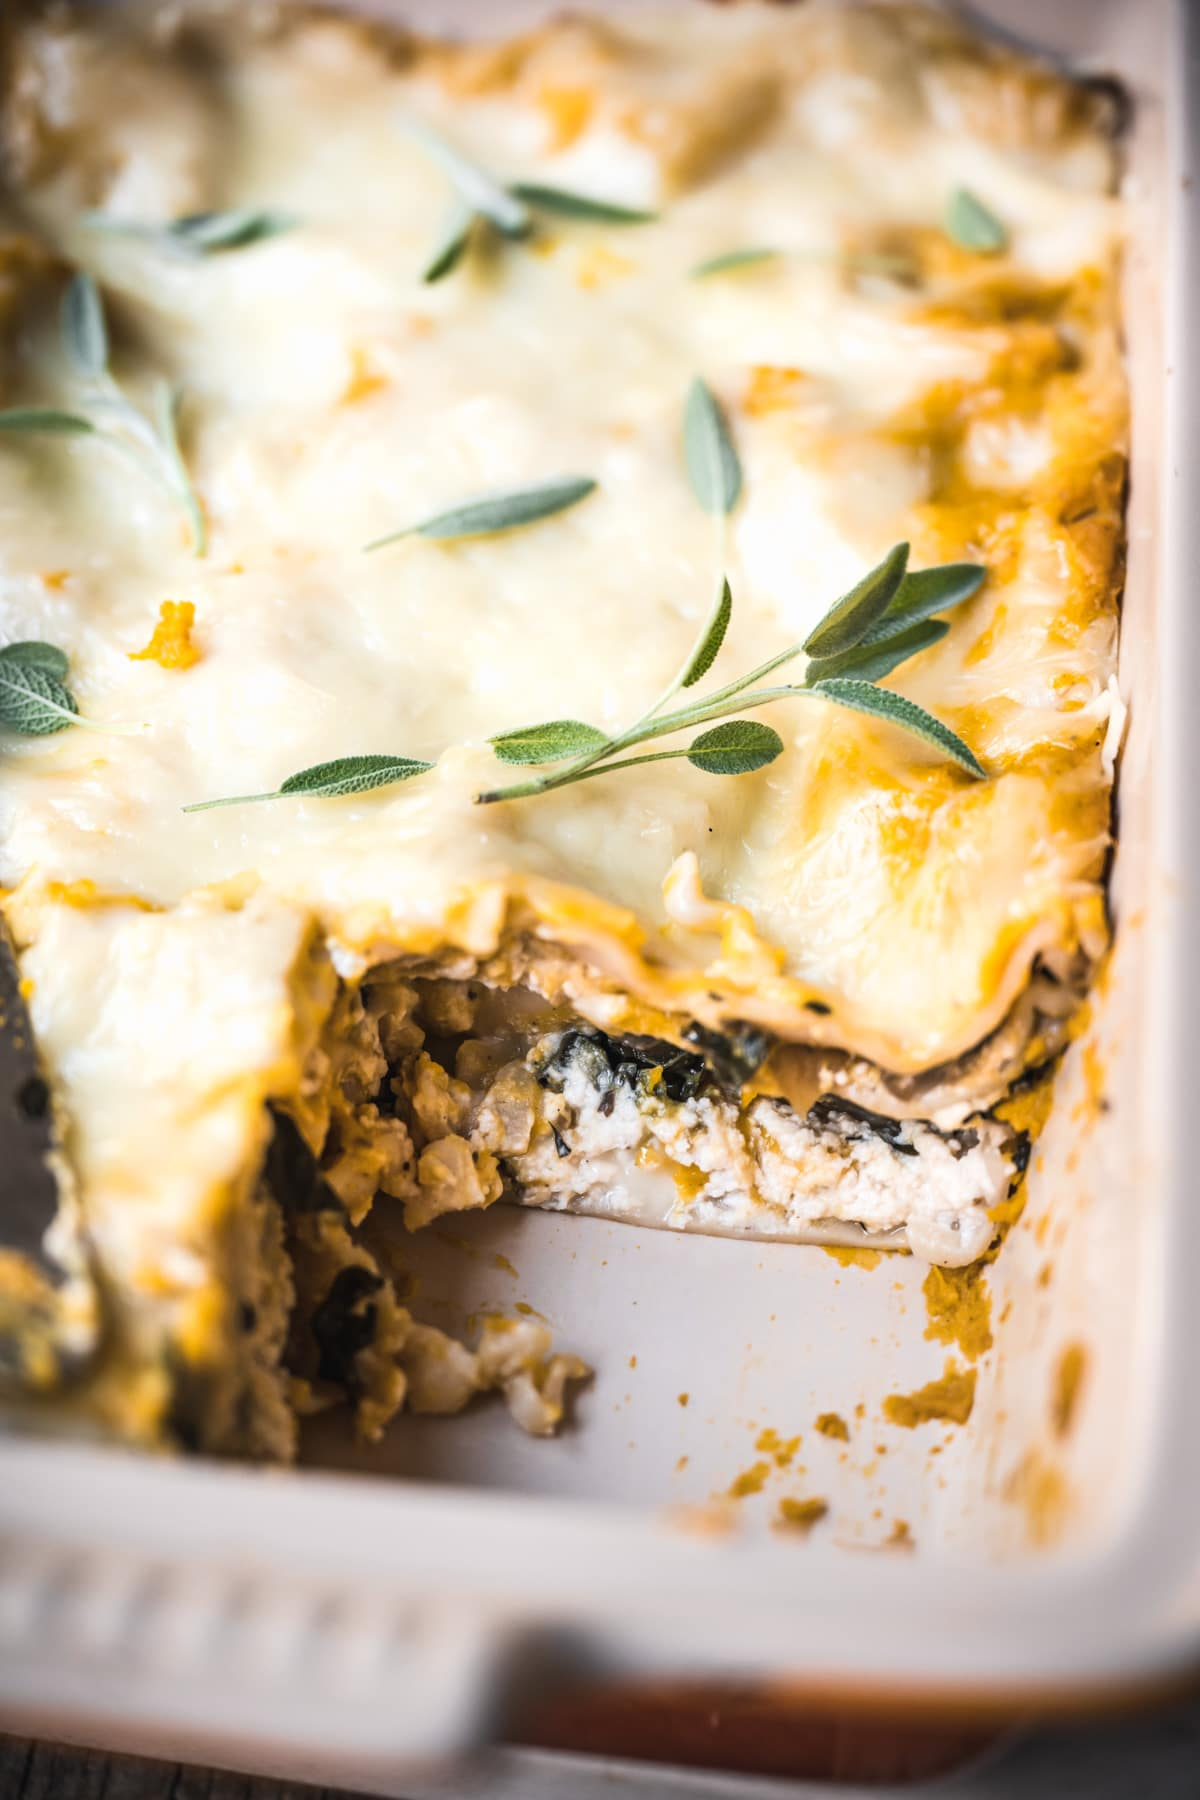 close up view of slice of vegan butternut squash lasagna with layer of ricotta and mushrooms/spinach.